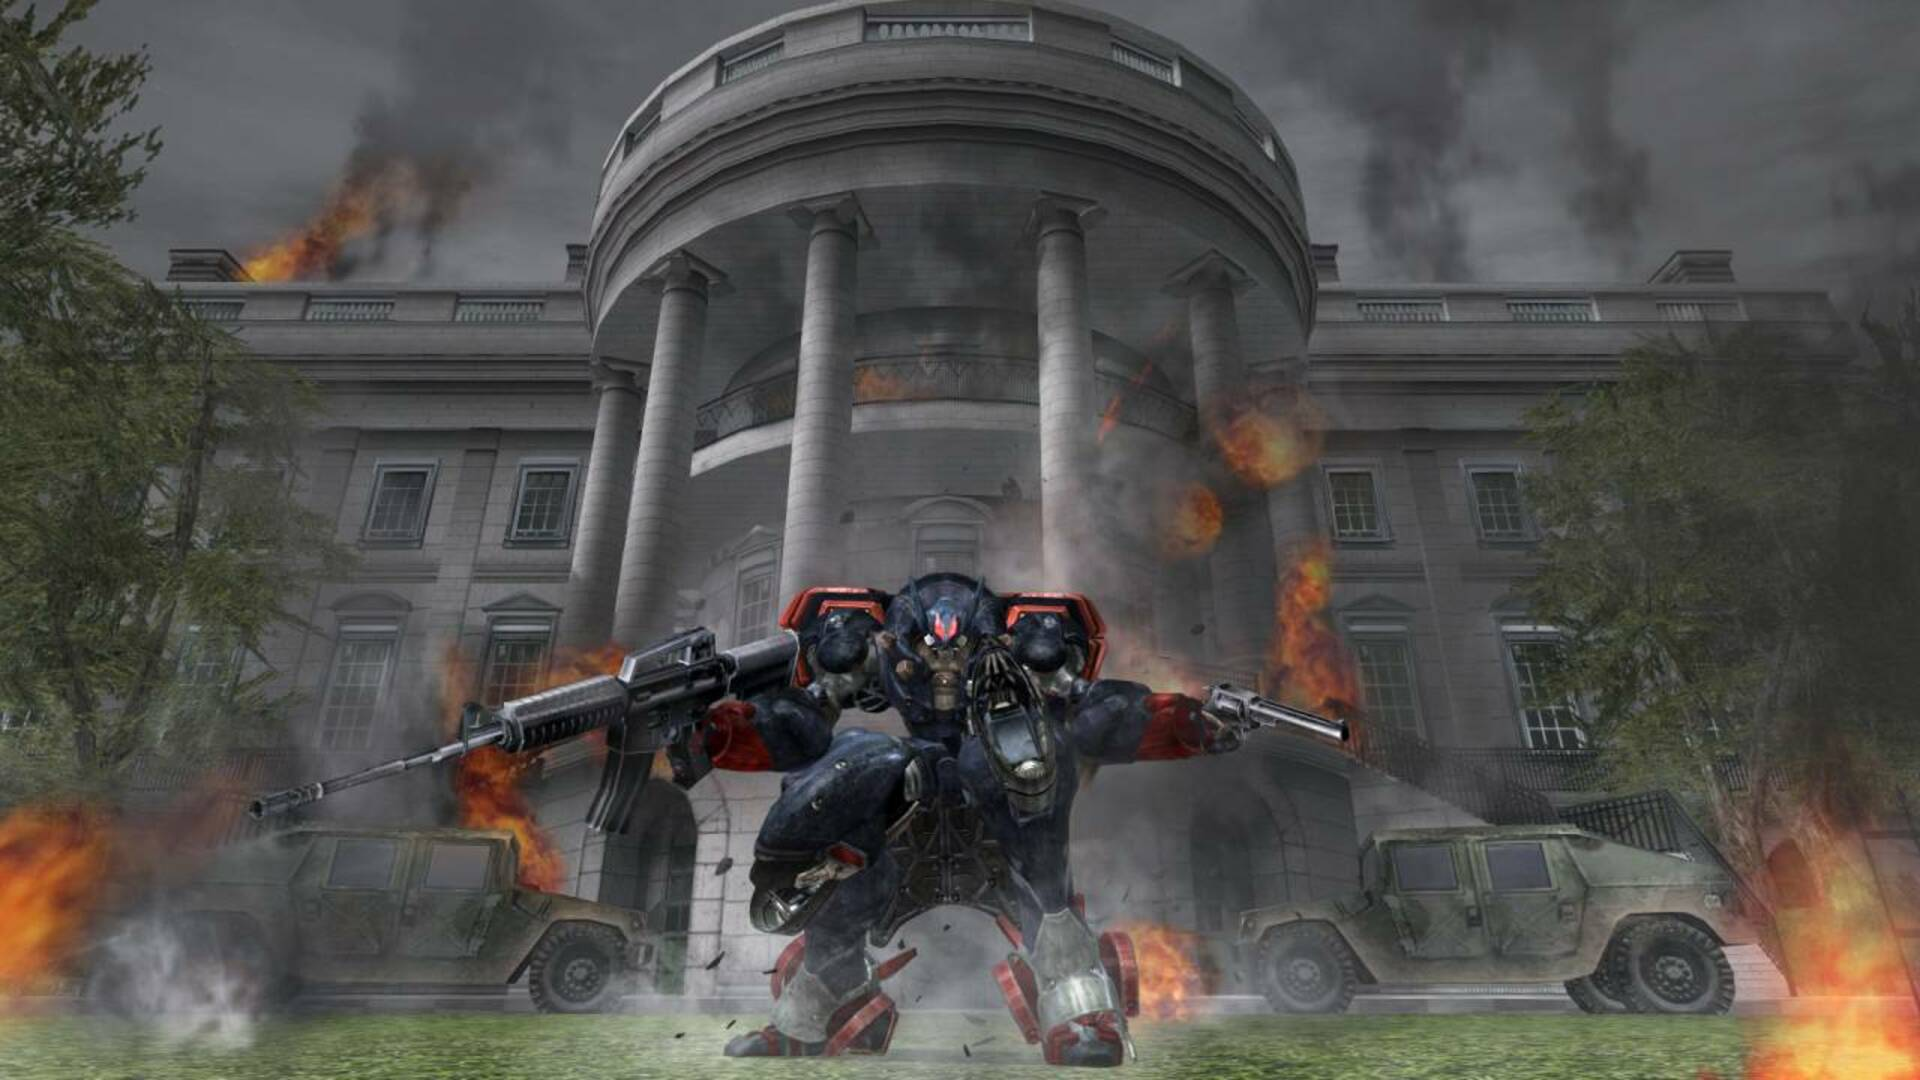 Metal Wolf Chaos XD's Exaggerated Japanese Take On American Patriotism, as Observed by a Canadian